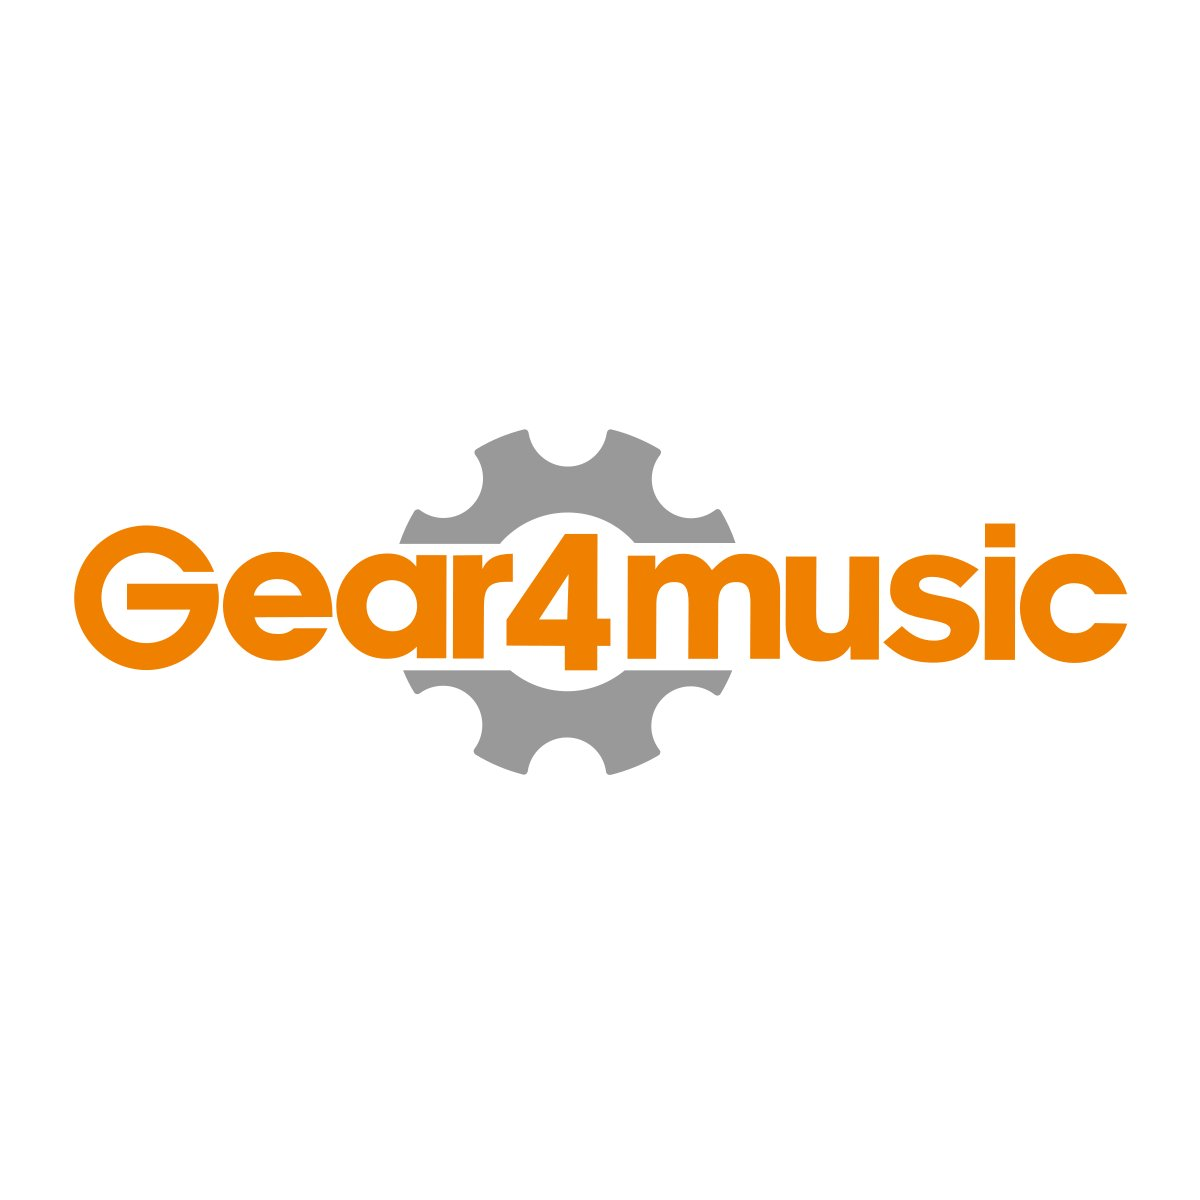 Junior kachon marki Gear4music, heban